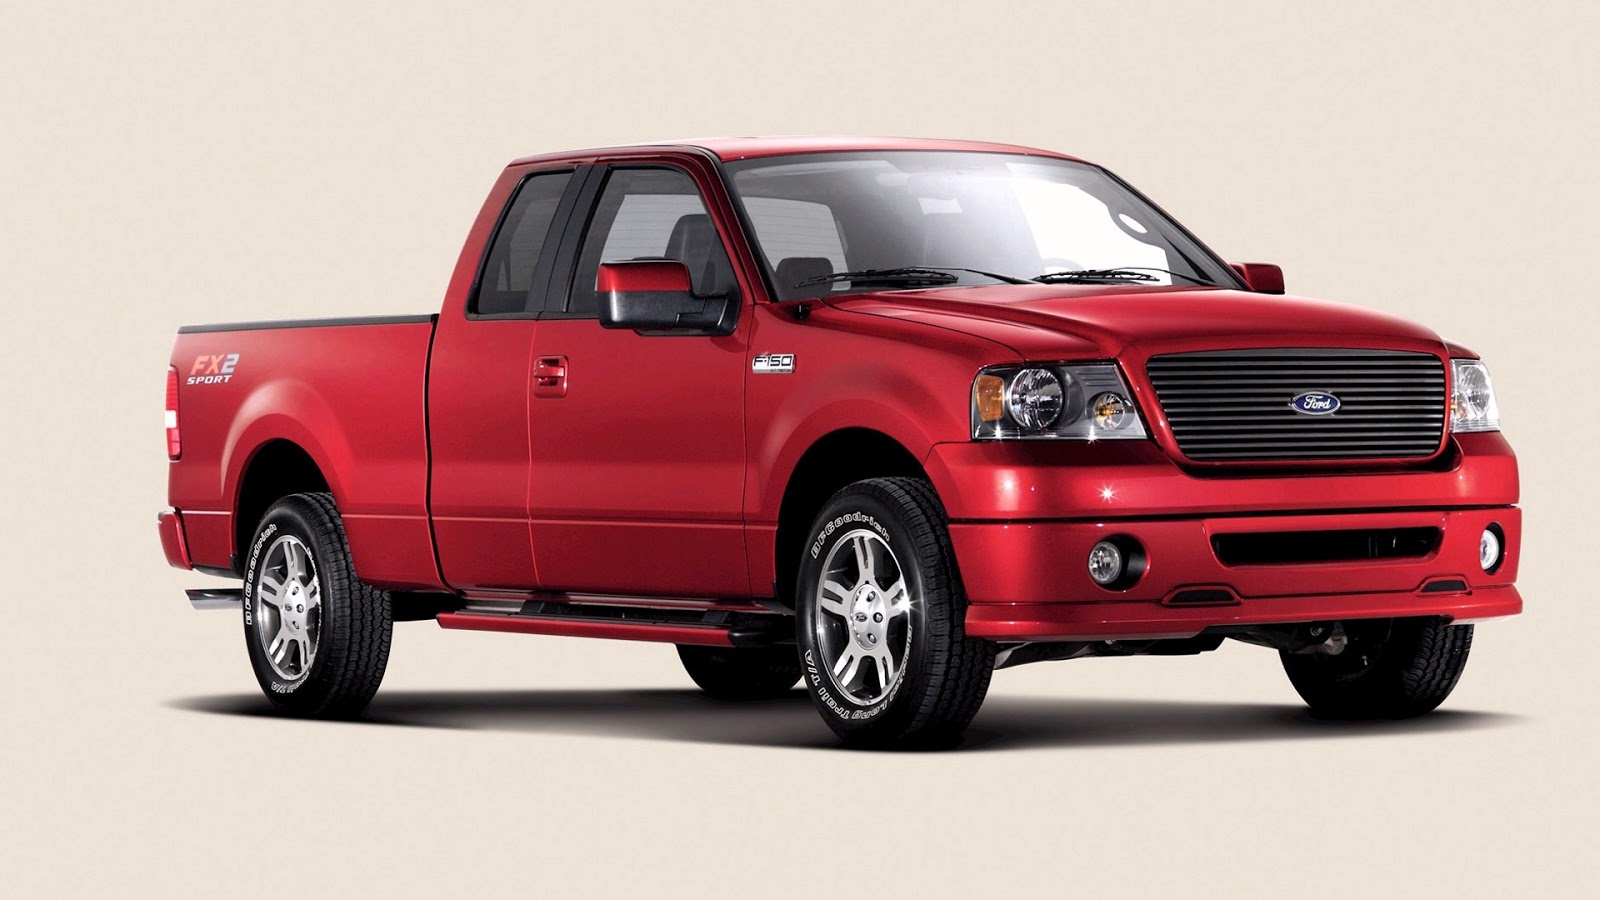 Ford F-150 Wallpapers HD | Amazing Wallpapers